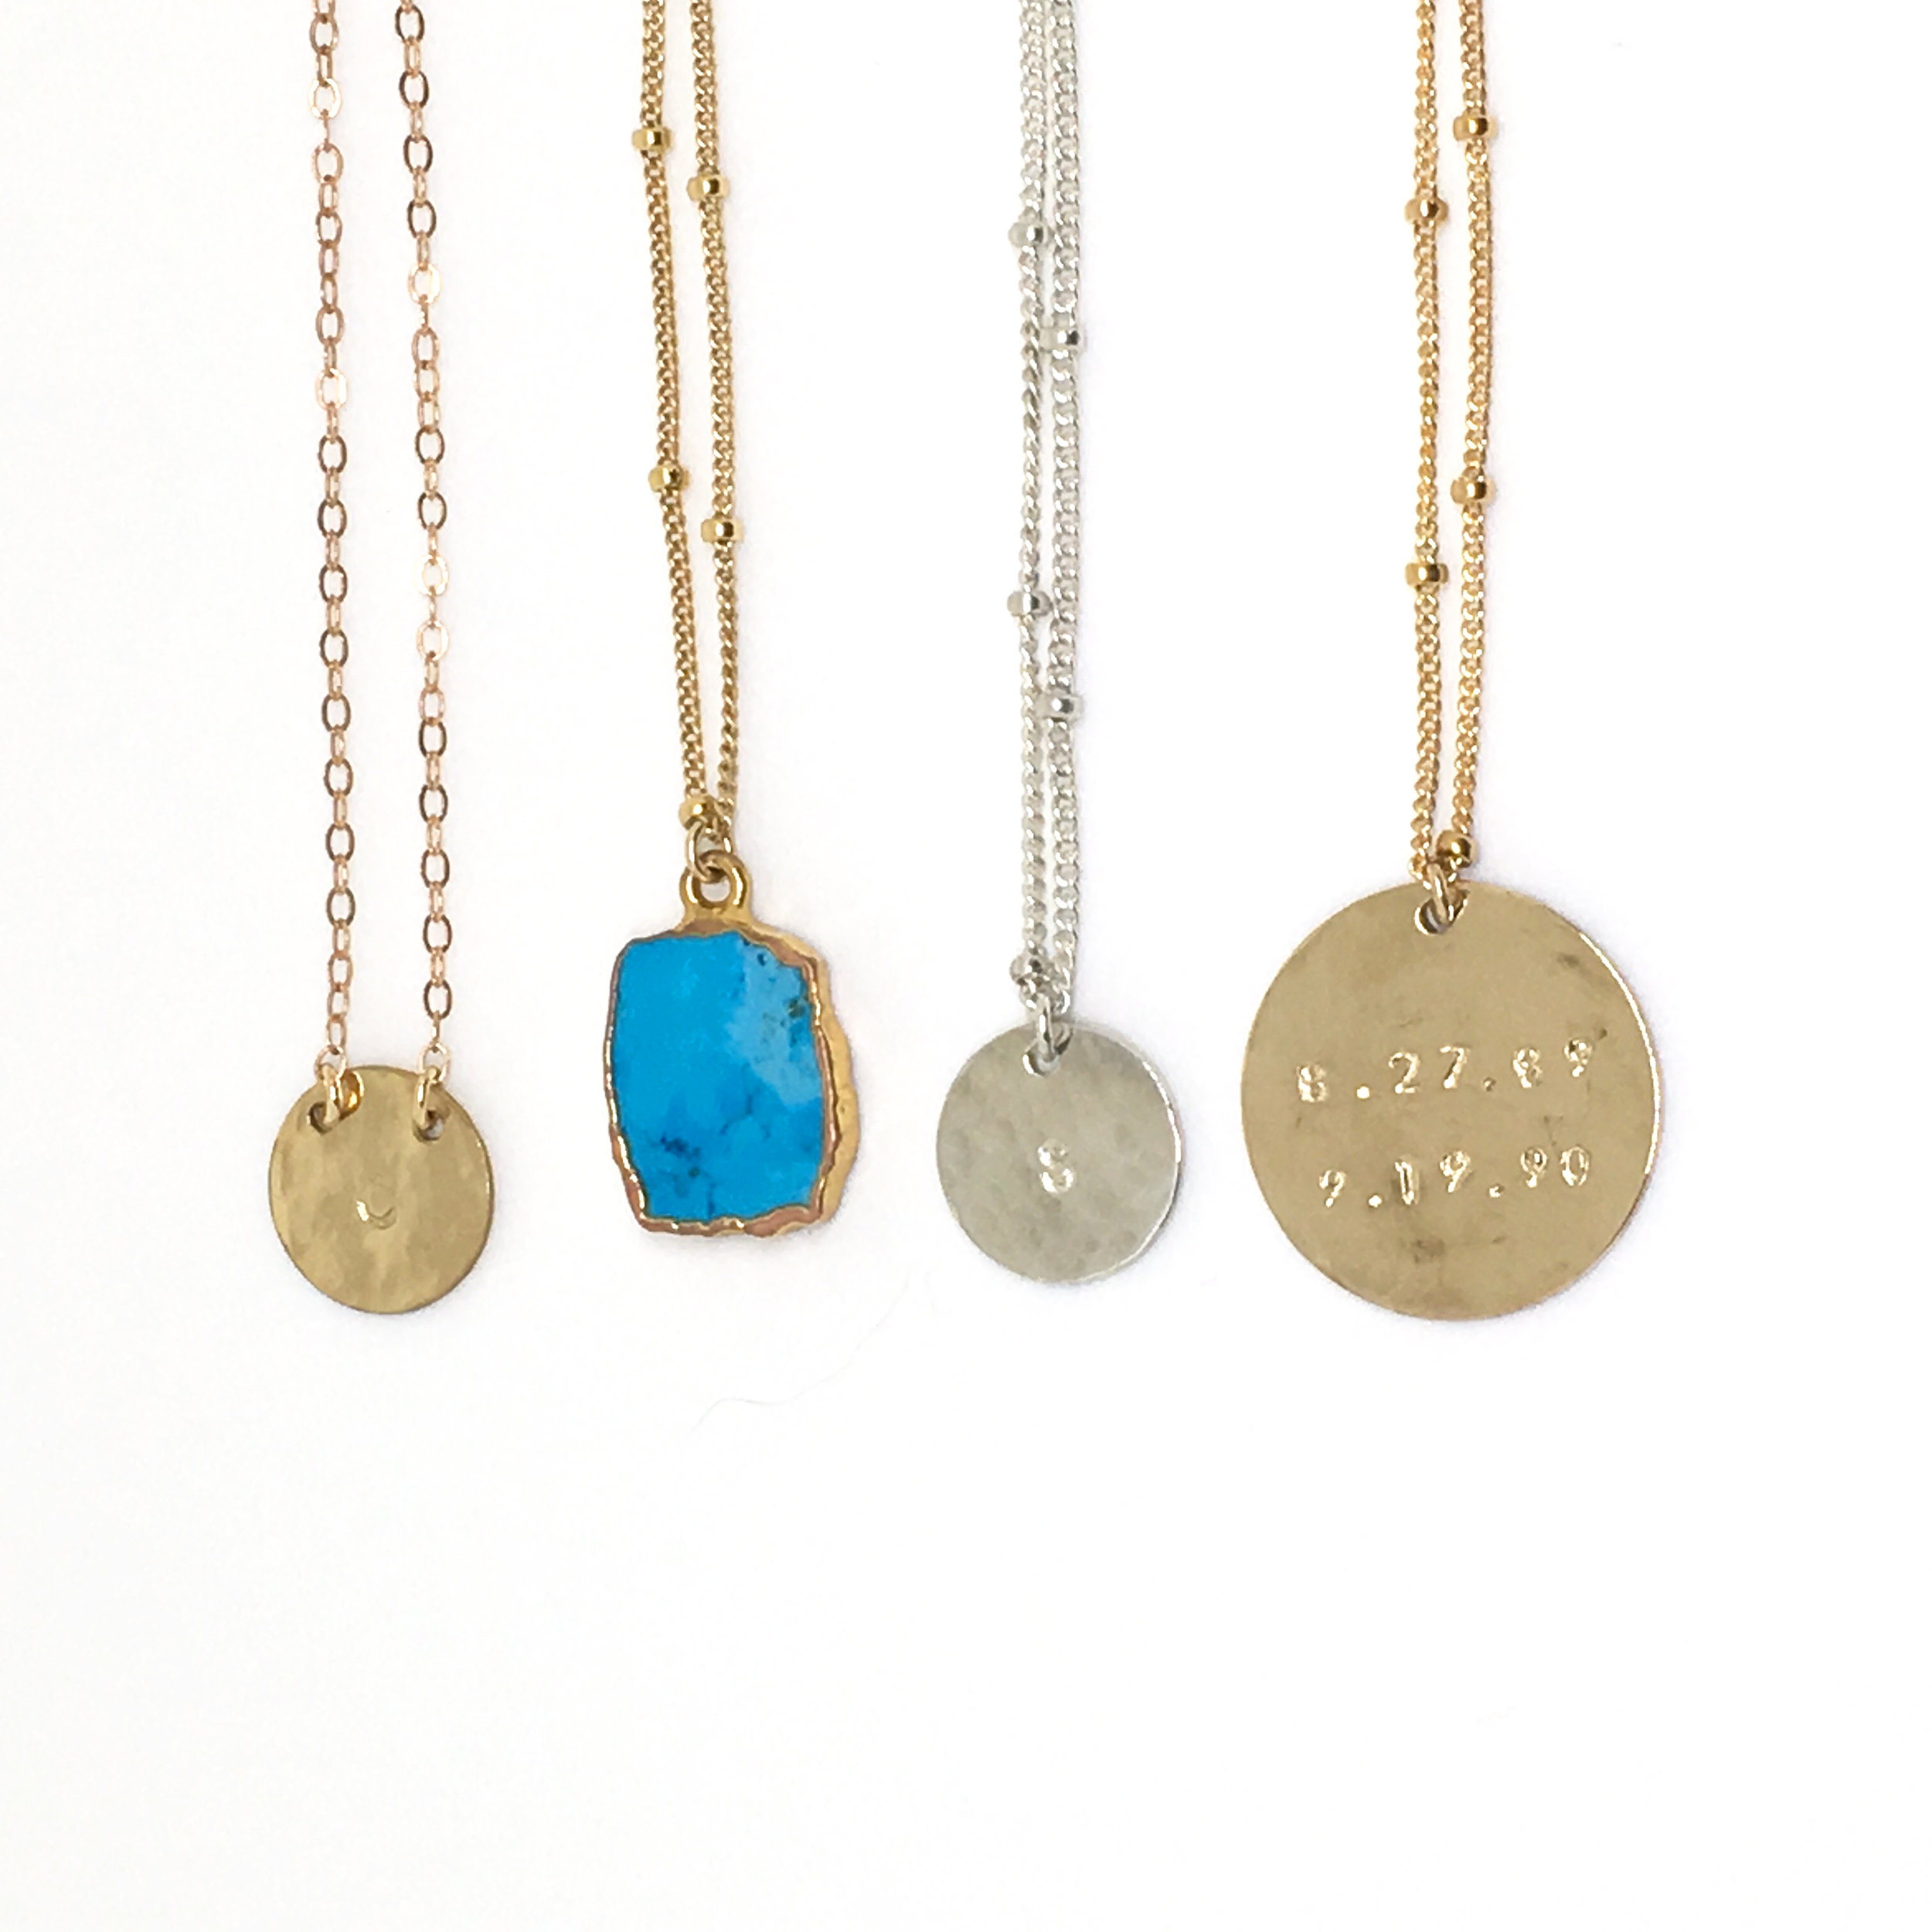 4necklaces4.jpg